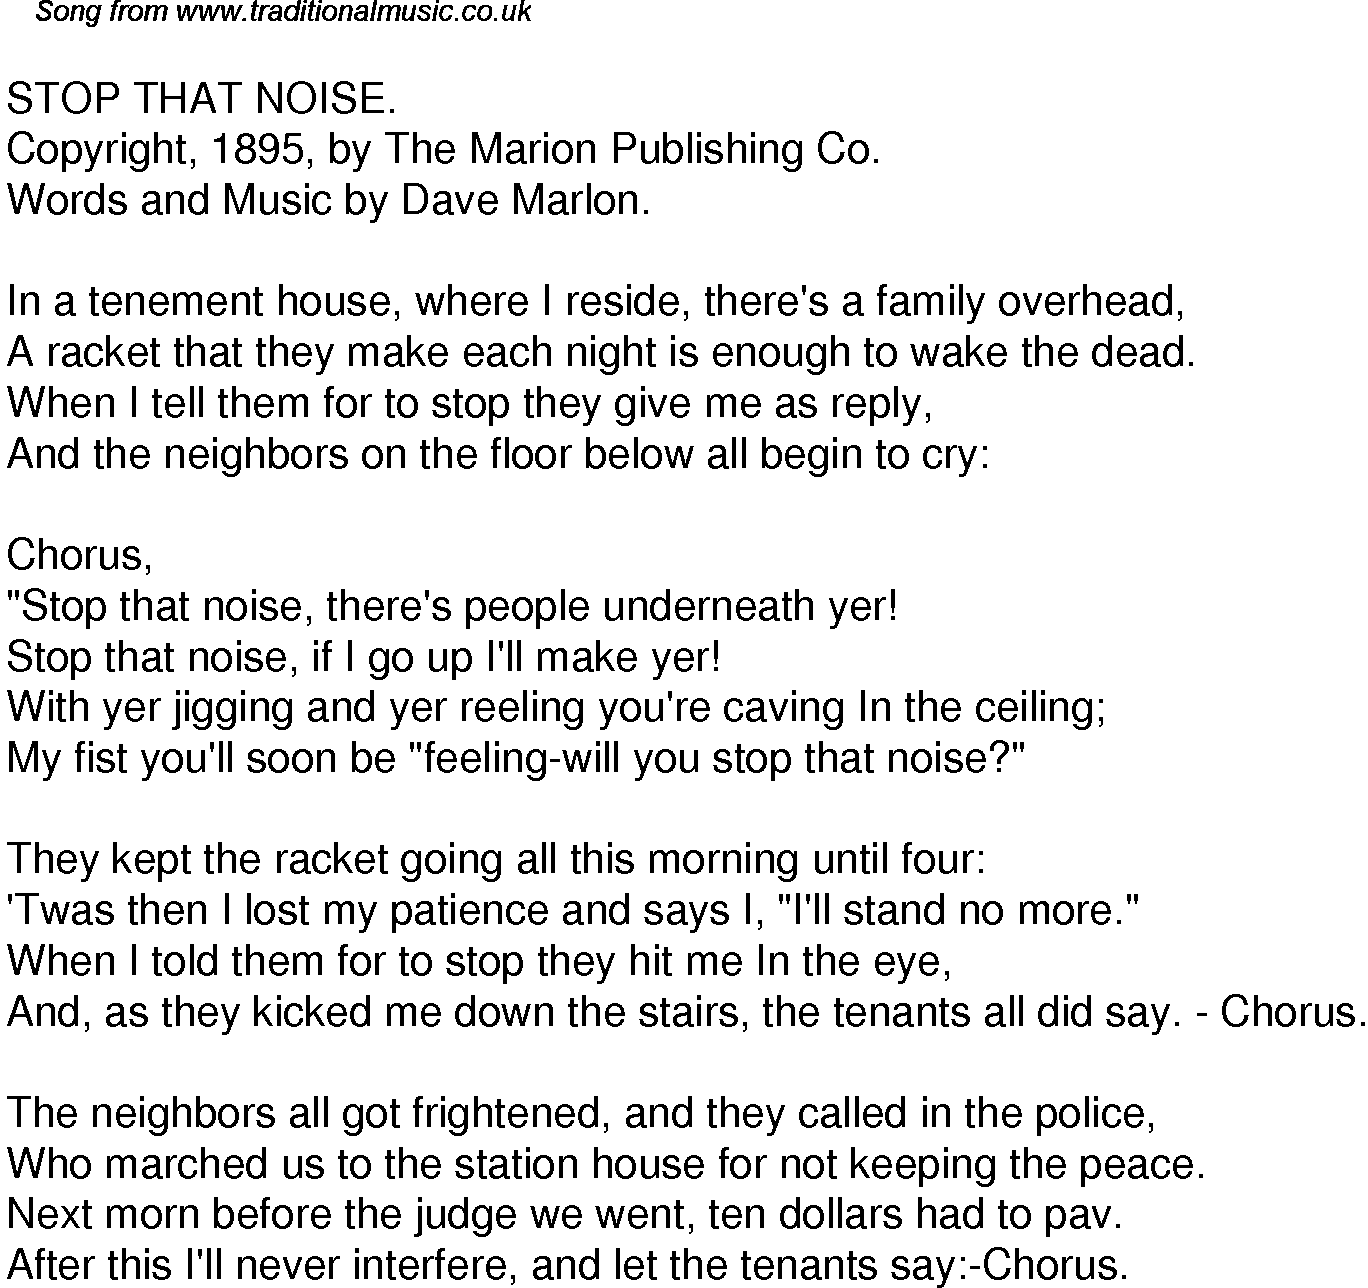 Old Time Song Lyrics For Stop That Noise